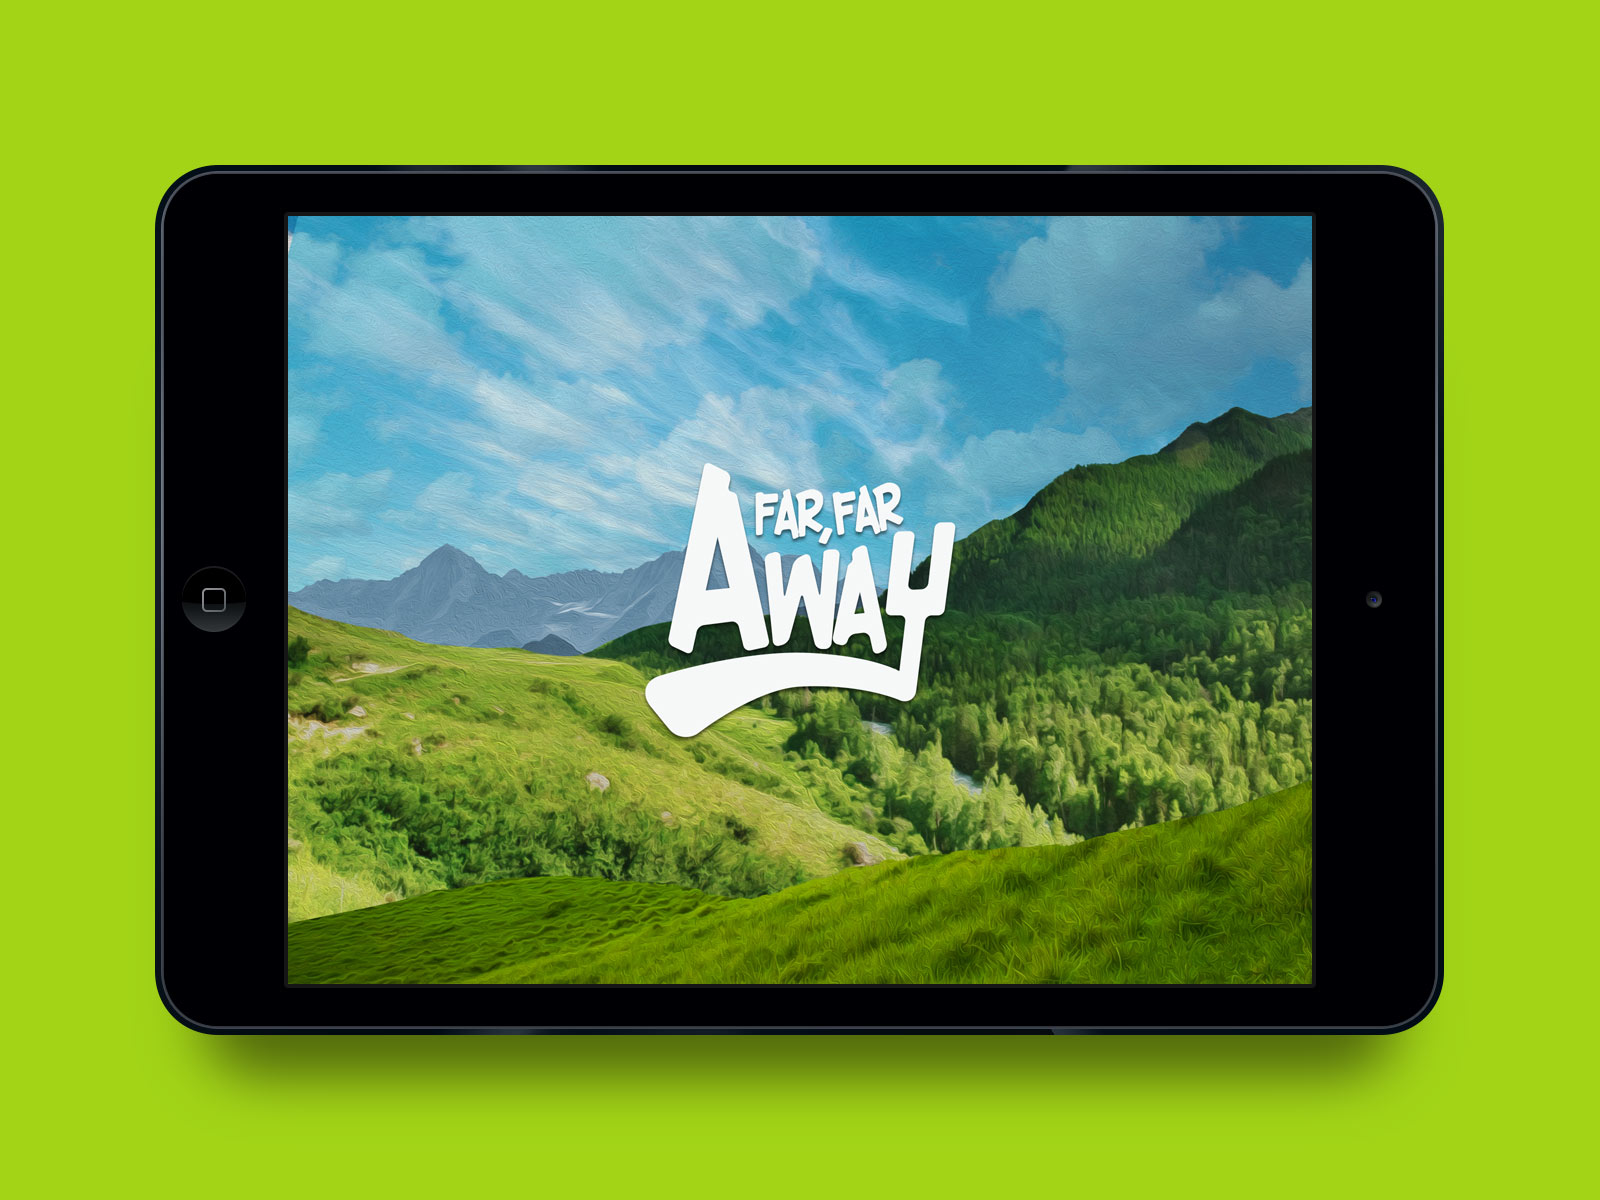 Far Far Away app in iPad. Interactive book and video chat.